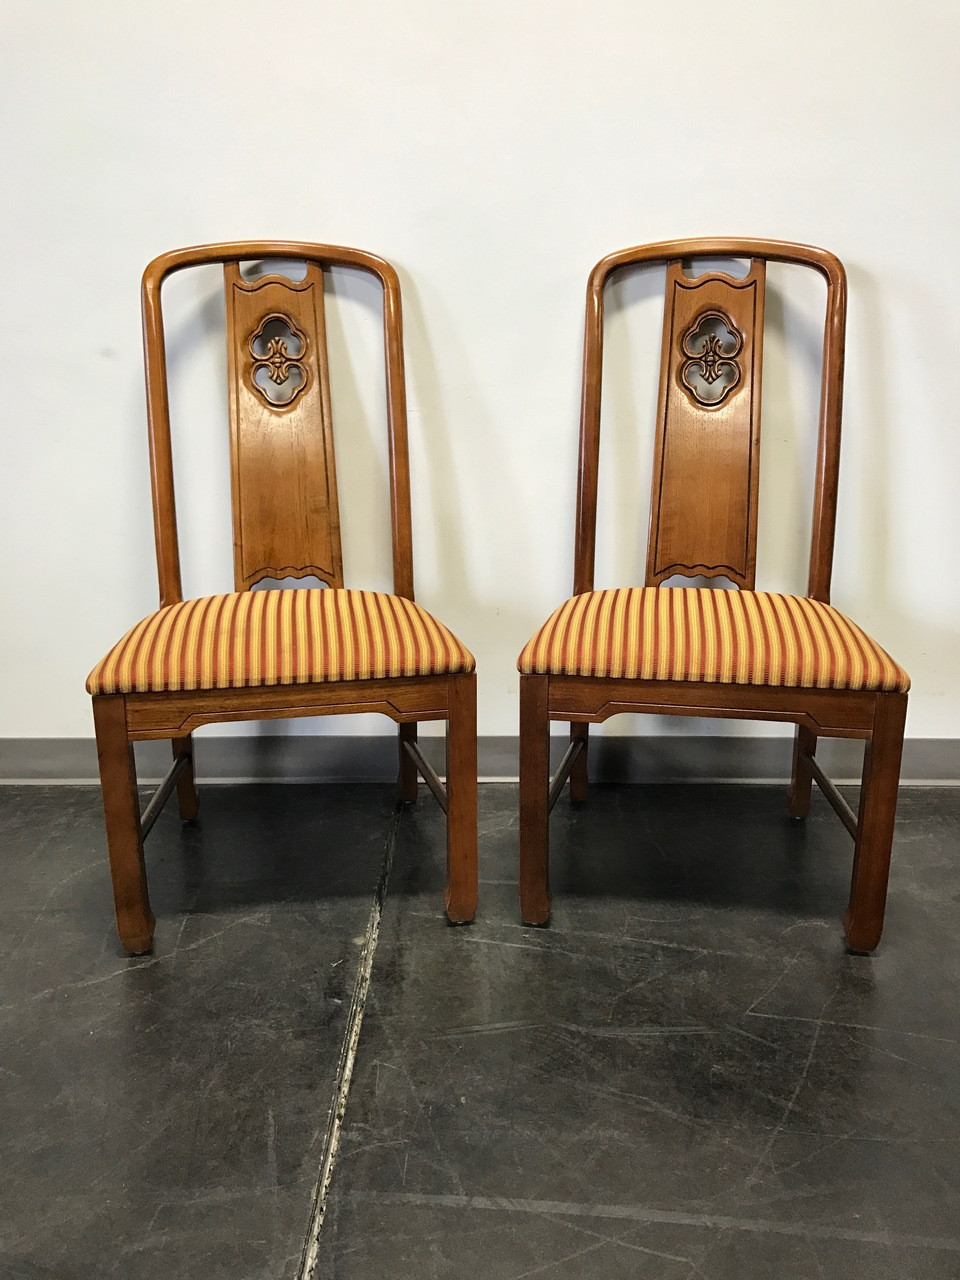 SOLD OUT THOMASVILLE Mystique Asian Influenced Dining Side Chairs